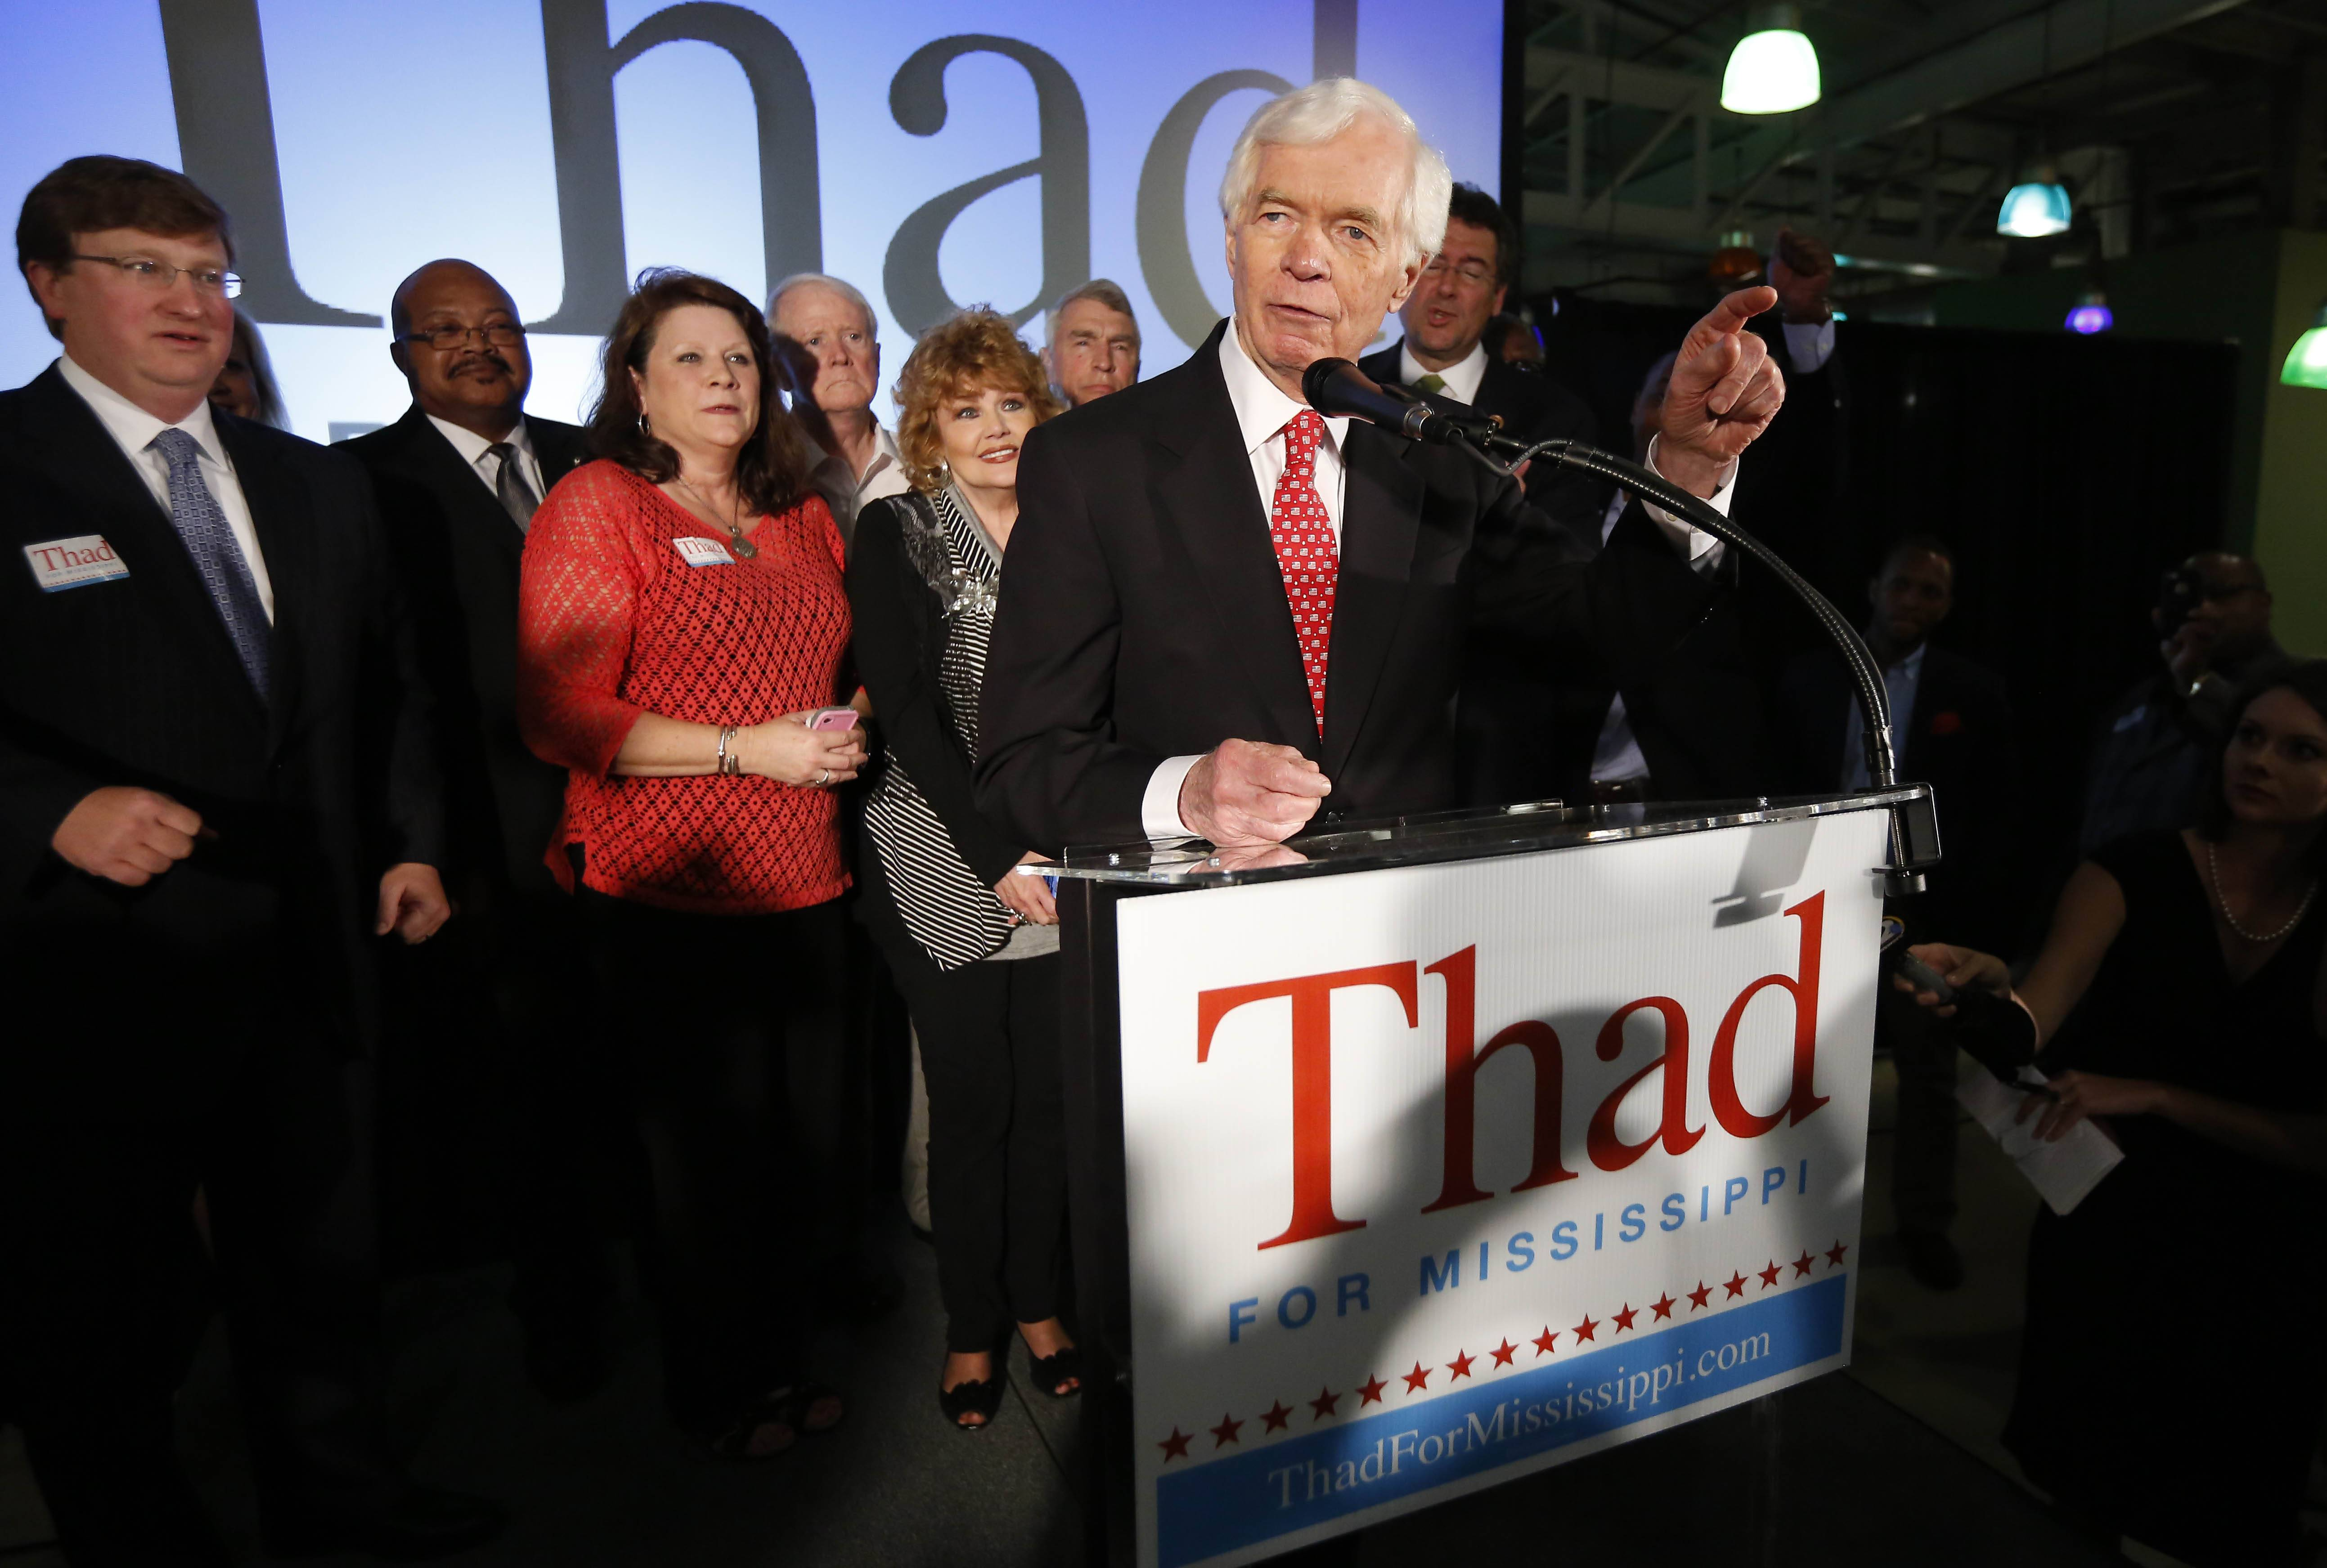 U.S. Sen. Thad Cochran, a Mississippi Republican, addresses supporters and volunteers at his runoff election victory party Tuesday in Jackson, Miss. Cochran defeated state Tea Party-backed Sen. Chris McDaniel.